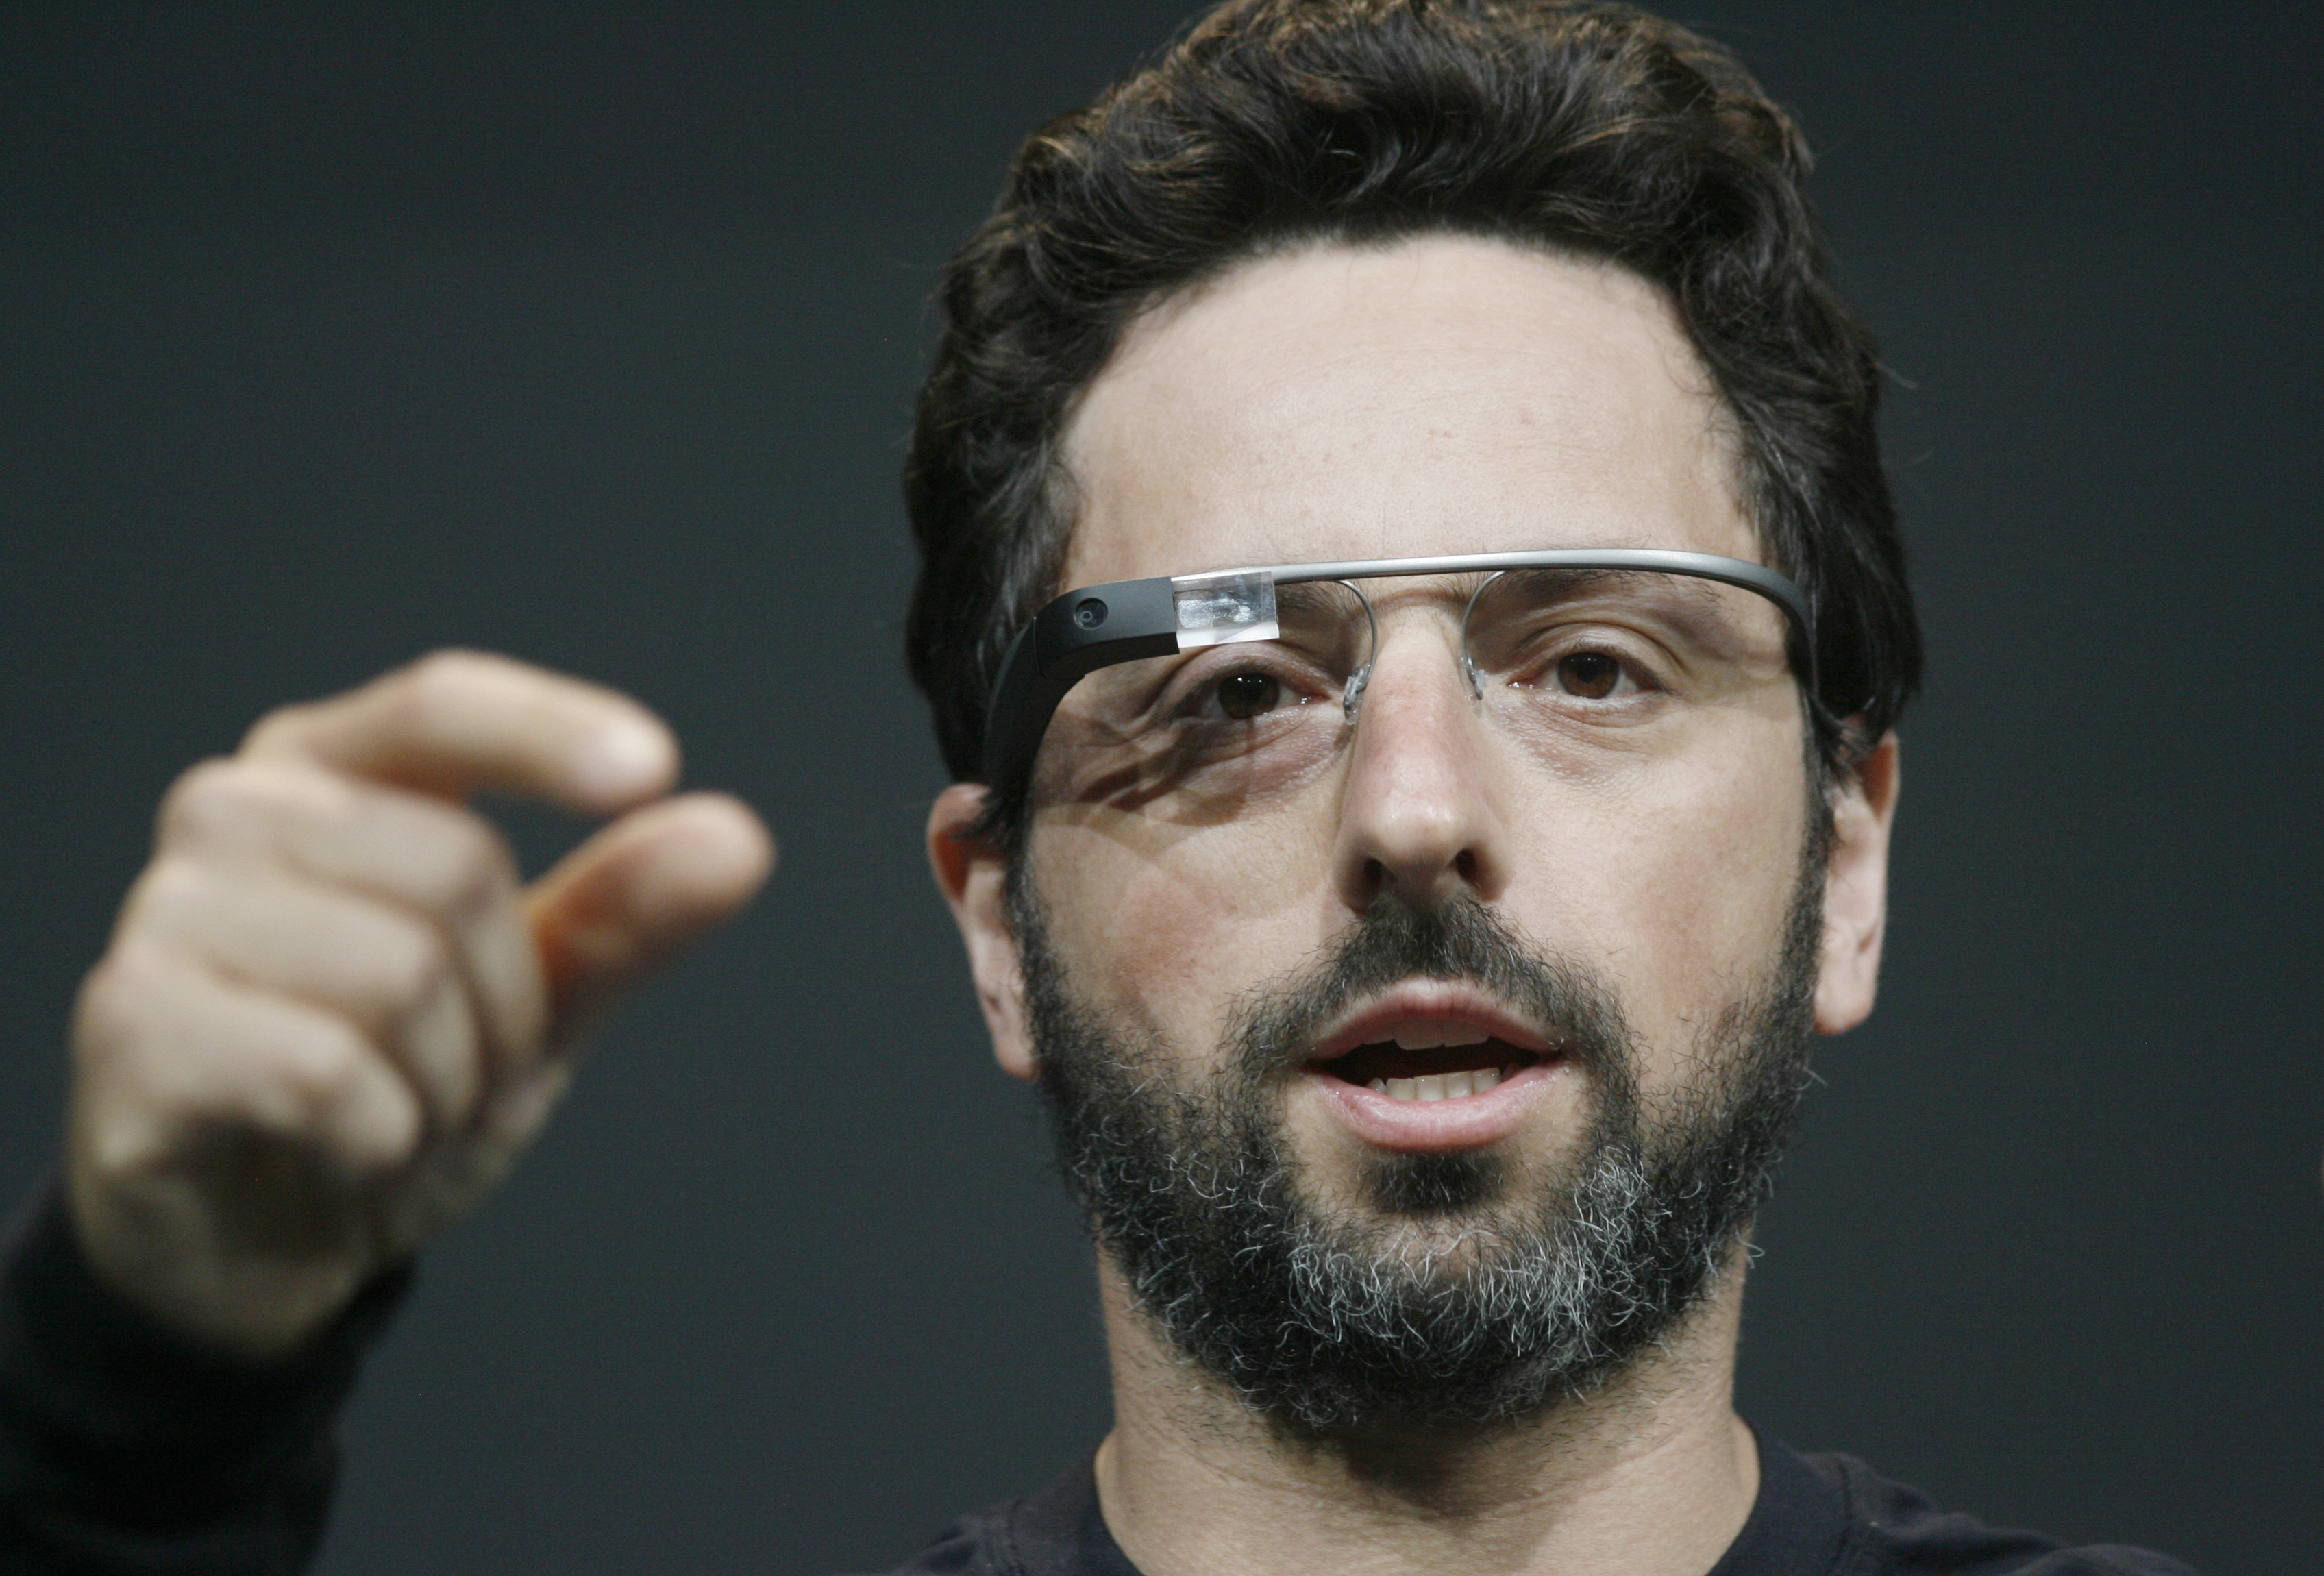 Google co-founder Sergey Brin introduces the Google Class Explorer edition during Google's annual developer conference, Google I/O, last year.